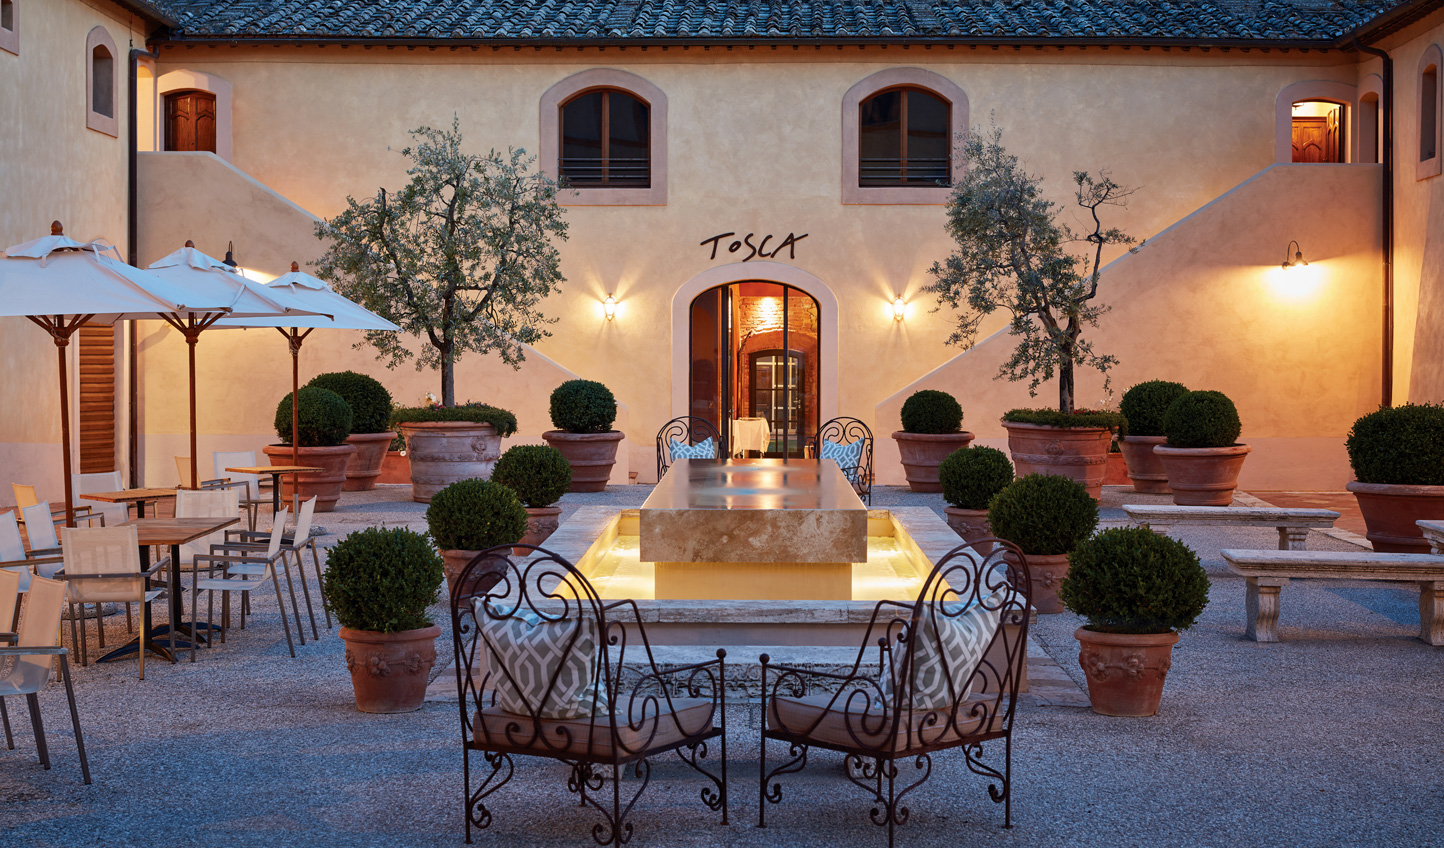 Spend balmy evenings out in the courtyard